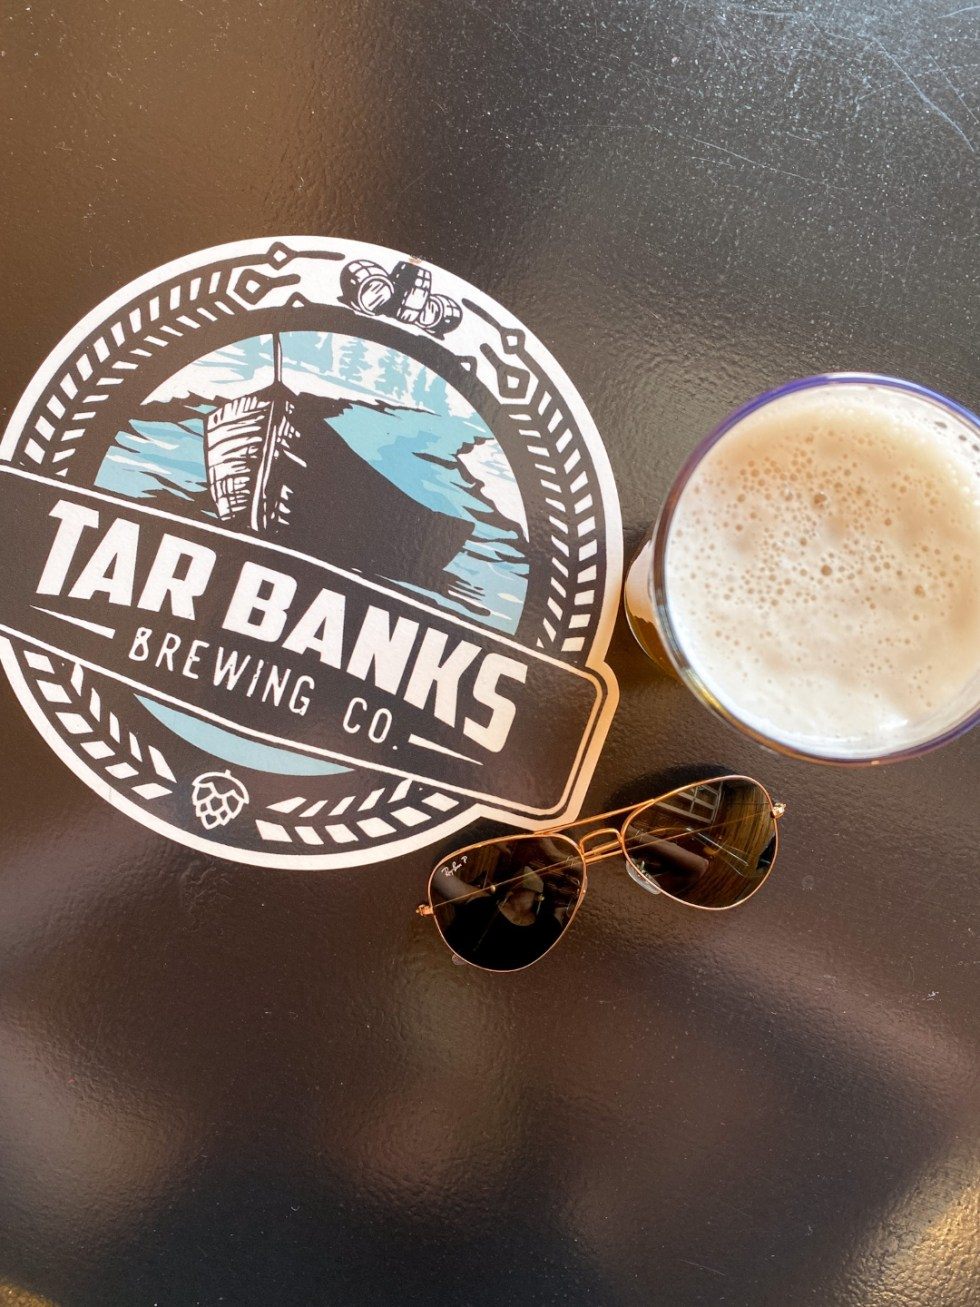 An Afternoon Trip to Franklin County, NC - I'm Fixin' To - @imfixintoblog | Franklin County NC by popular North Carolina travel blog, I'm Fixin' To: image of a Tar Banks Brewing Co coaster next to a glass of beer and aviator sunglasses.